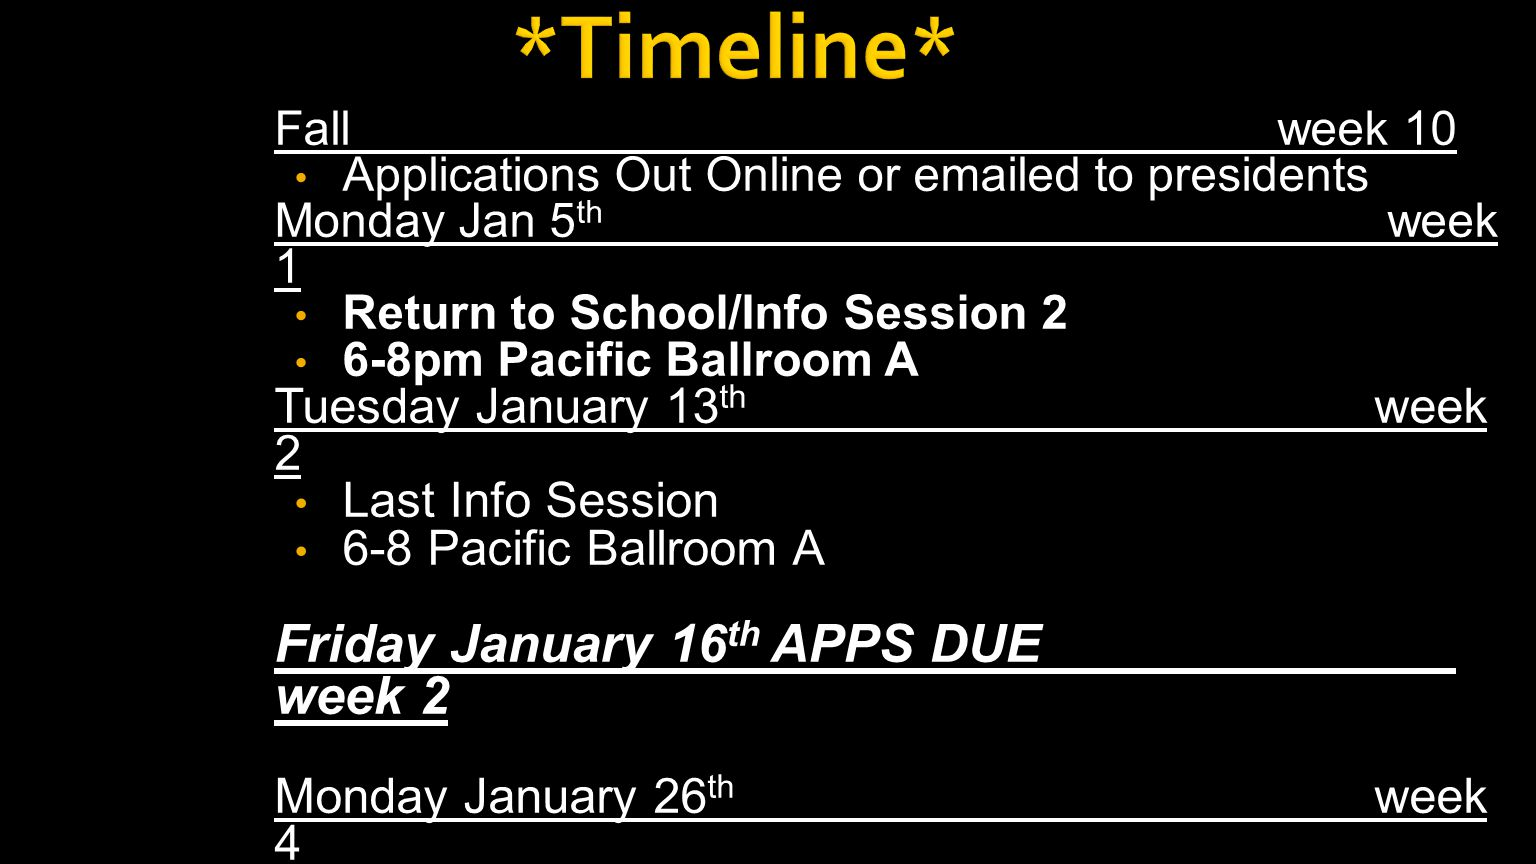 Fall week 10 Applications Out Online or emailed to presidents Monday Jan 5 th week 1 Return to School/Info Session 2 6-8pm Pacific Ballroom A Tuesday January 13 th week 2 Last Info Session 6-8 Pacific Ballroom A Friday January 16 th APPS DUE week 2 Monday January 26 th week 4 First round of scoring Monday February 2 nd week 5 Second round of scoring